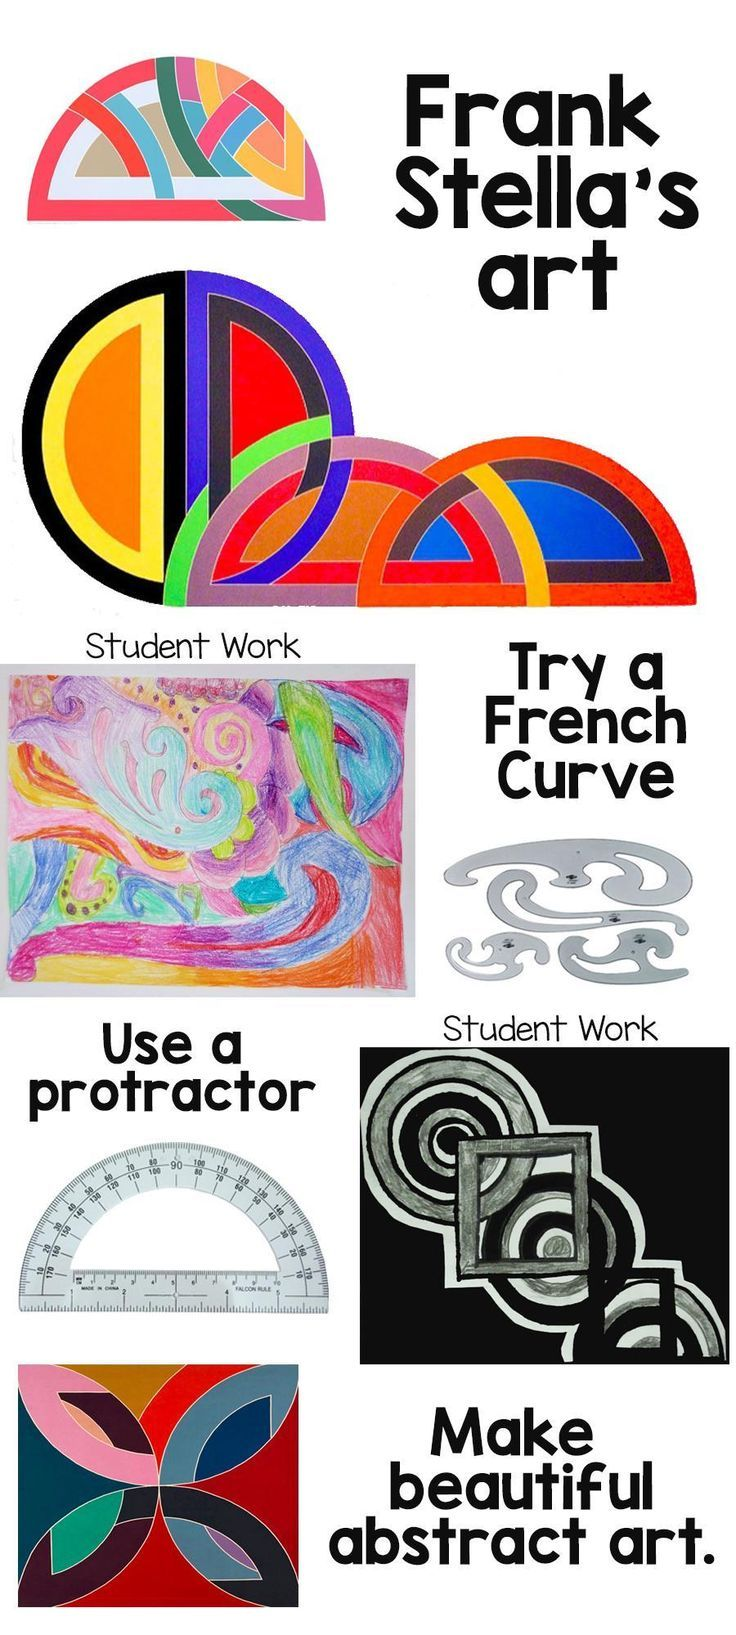 Frank Stella Inspired Pictures - http://www.oroscopointernazionaleblog.com/frank-stella-inspired-pictures/